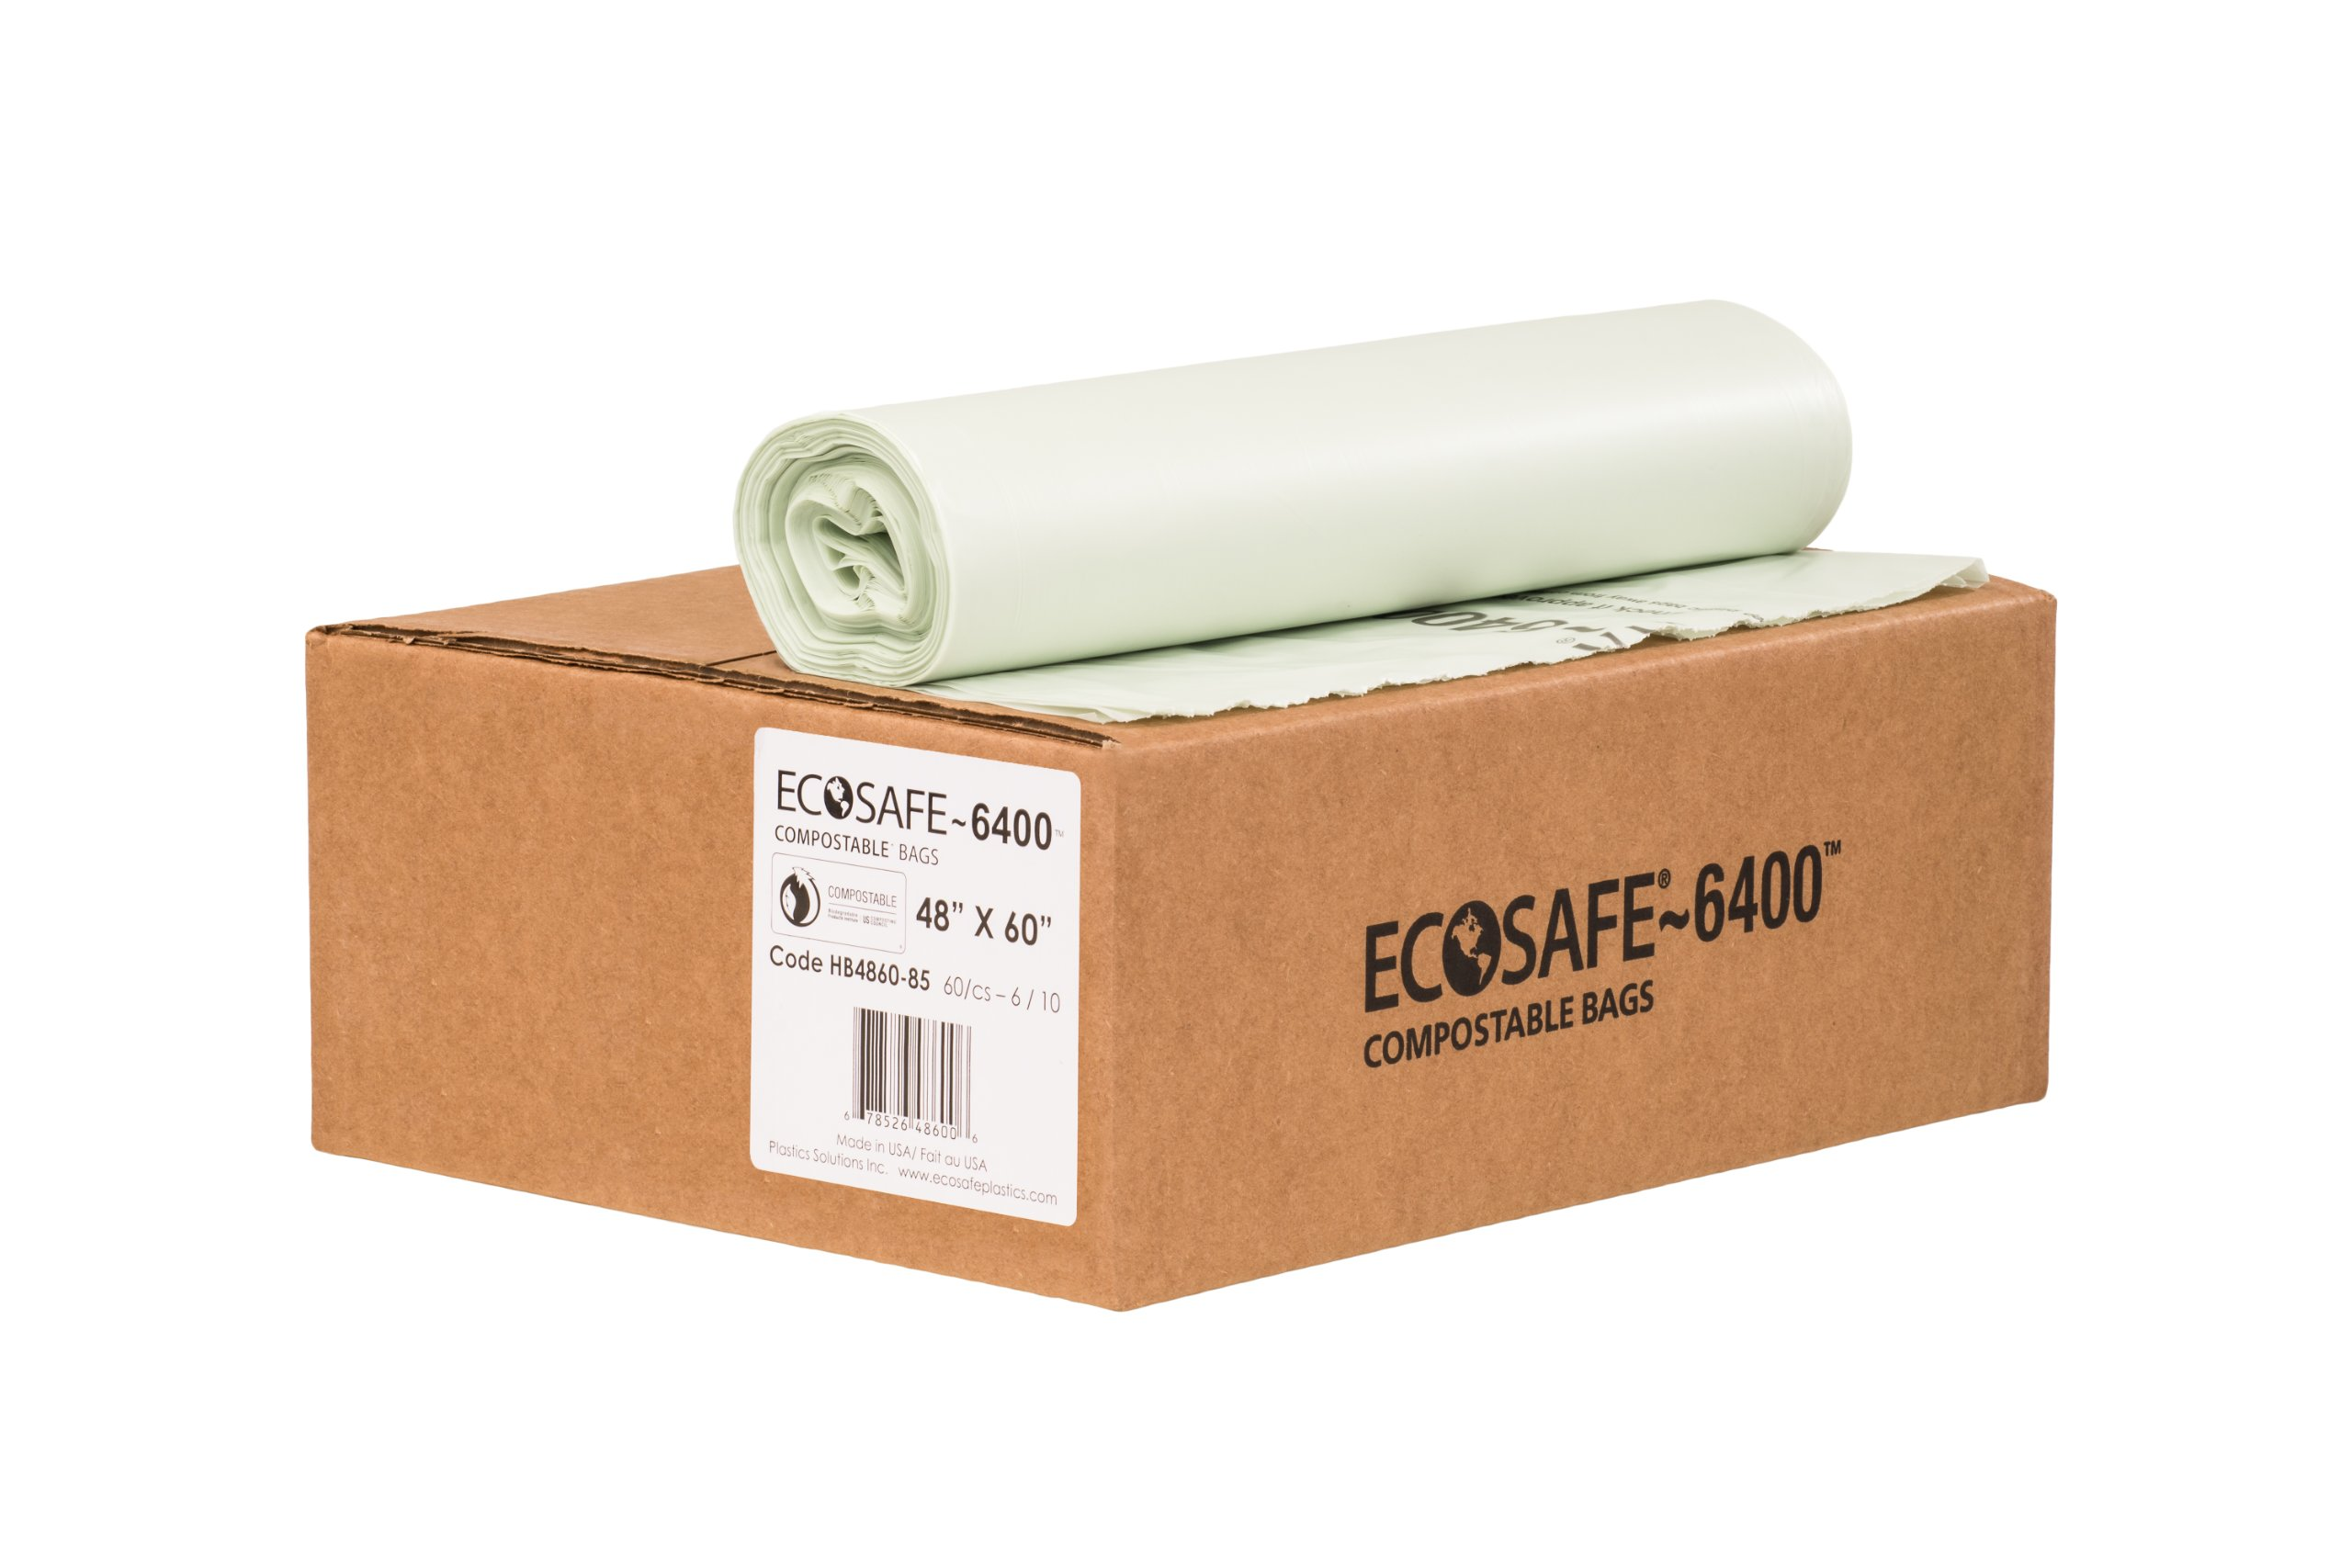 EcoSafe-6400 HB4860-85 Compostable Bag, Certified Compostable, 64-Gallon, Green (Pack of 60) by EcoSafe